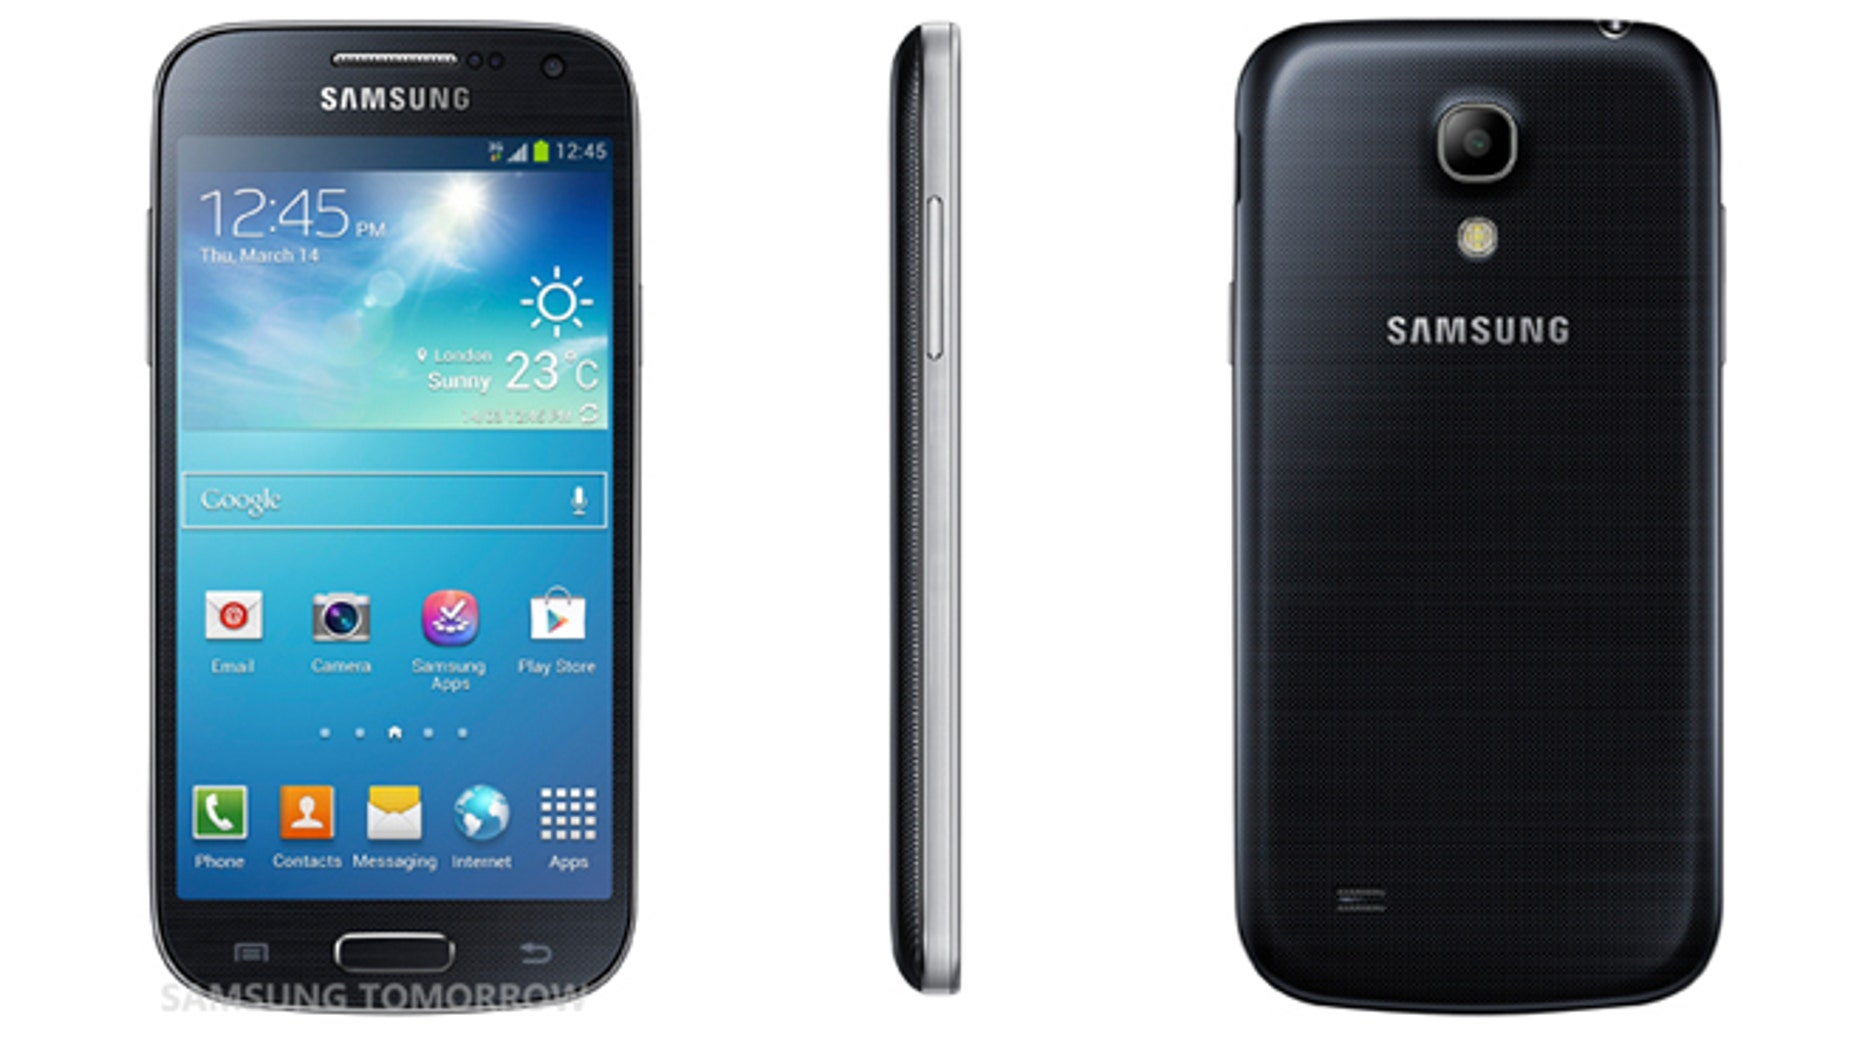 May 30, 2013: Samsung Electronics announced the Galaxy S4 mini, a powerful yet compact version of Samsung's bestselling smartphone.